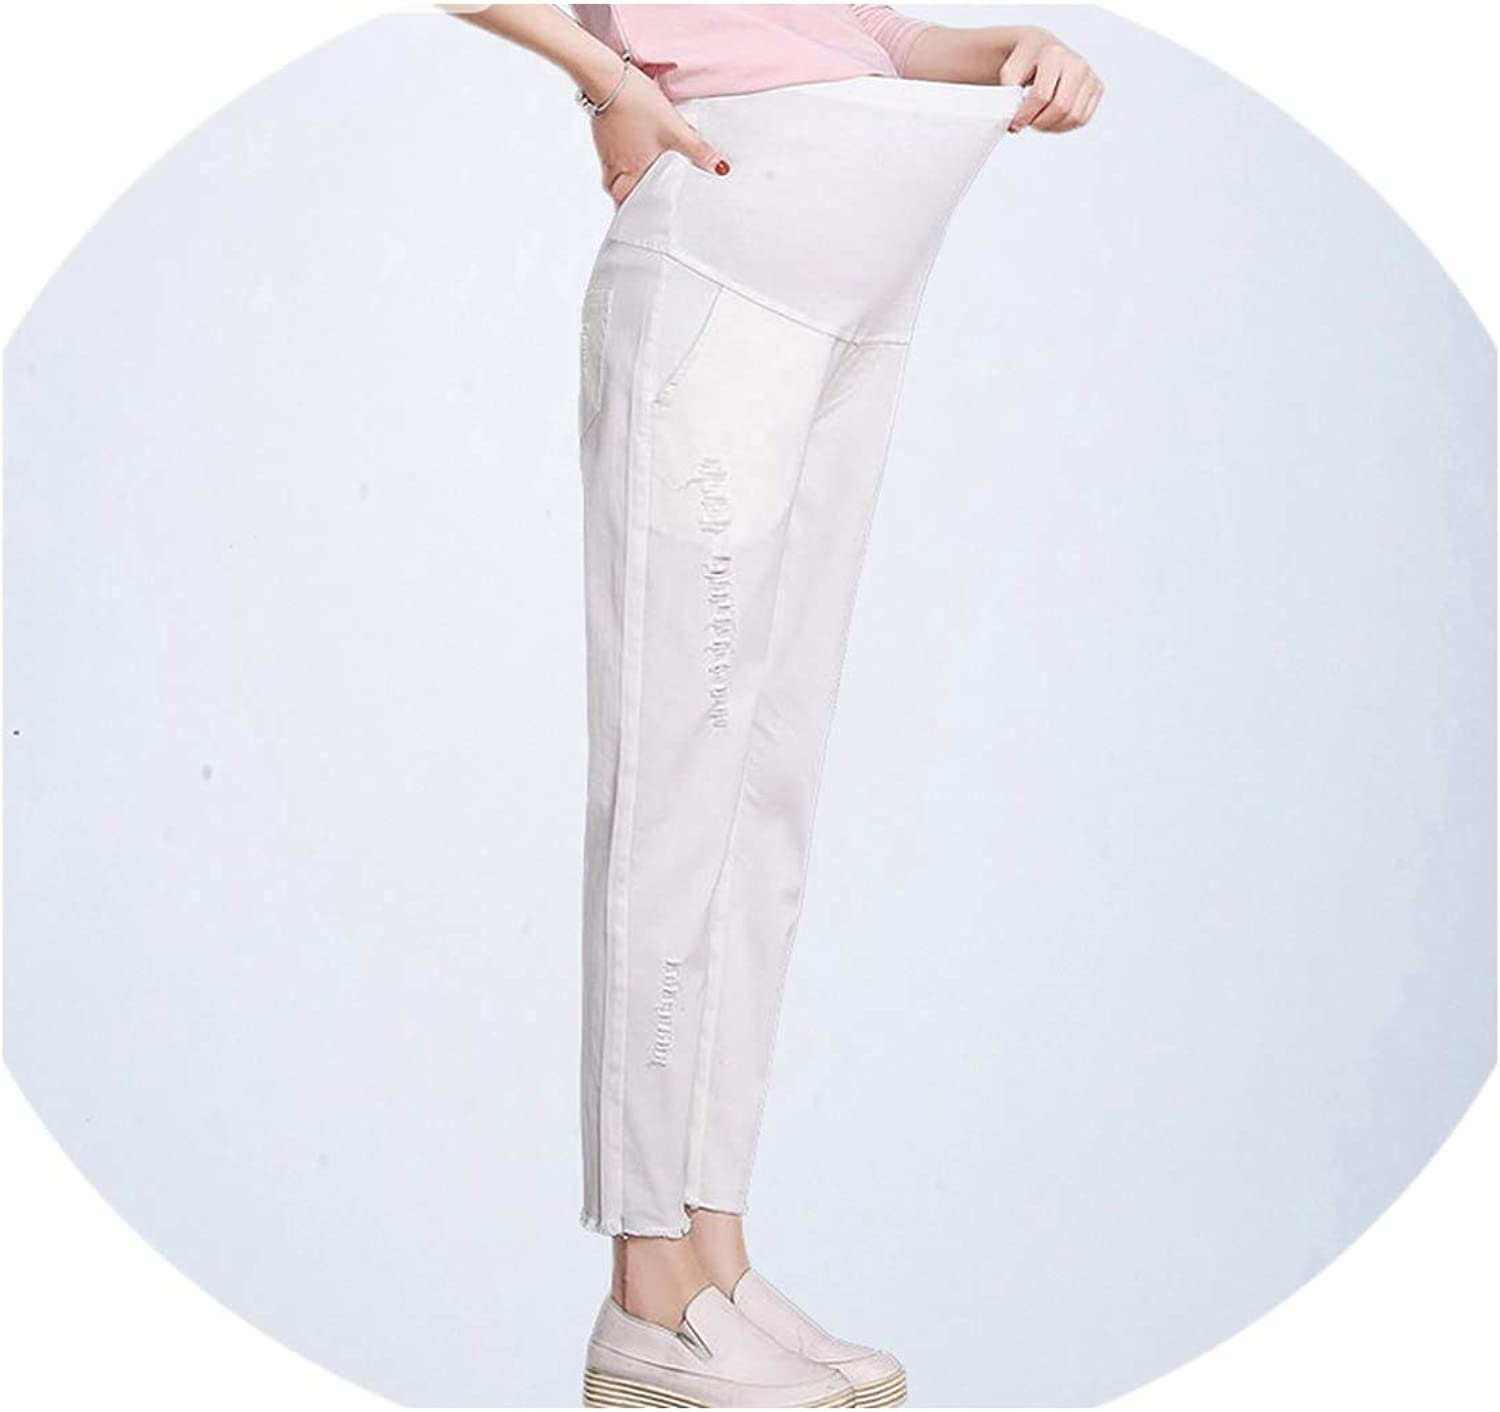 Pants for Pregnant Women Cotton Maternity Legging Pregnant Women Gestantes Pregnancy